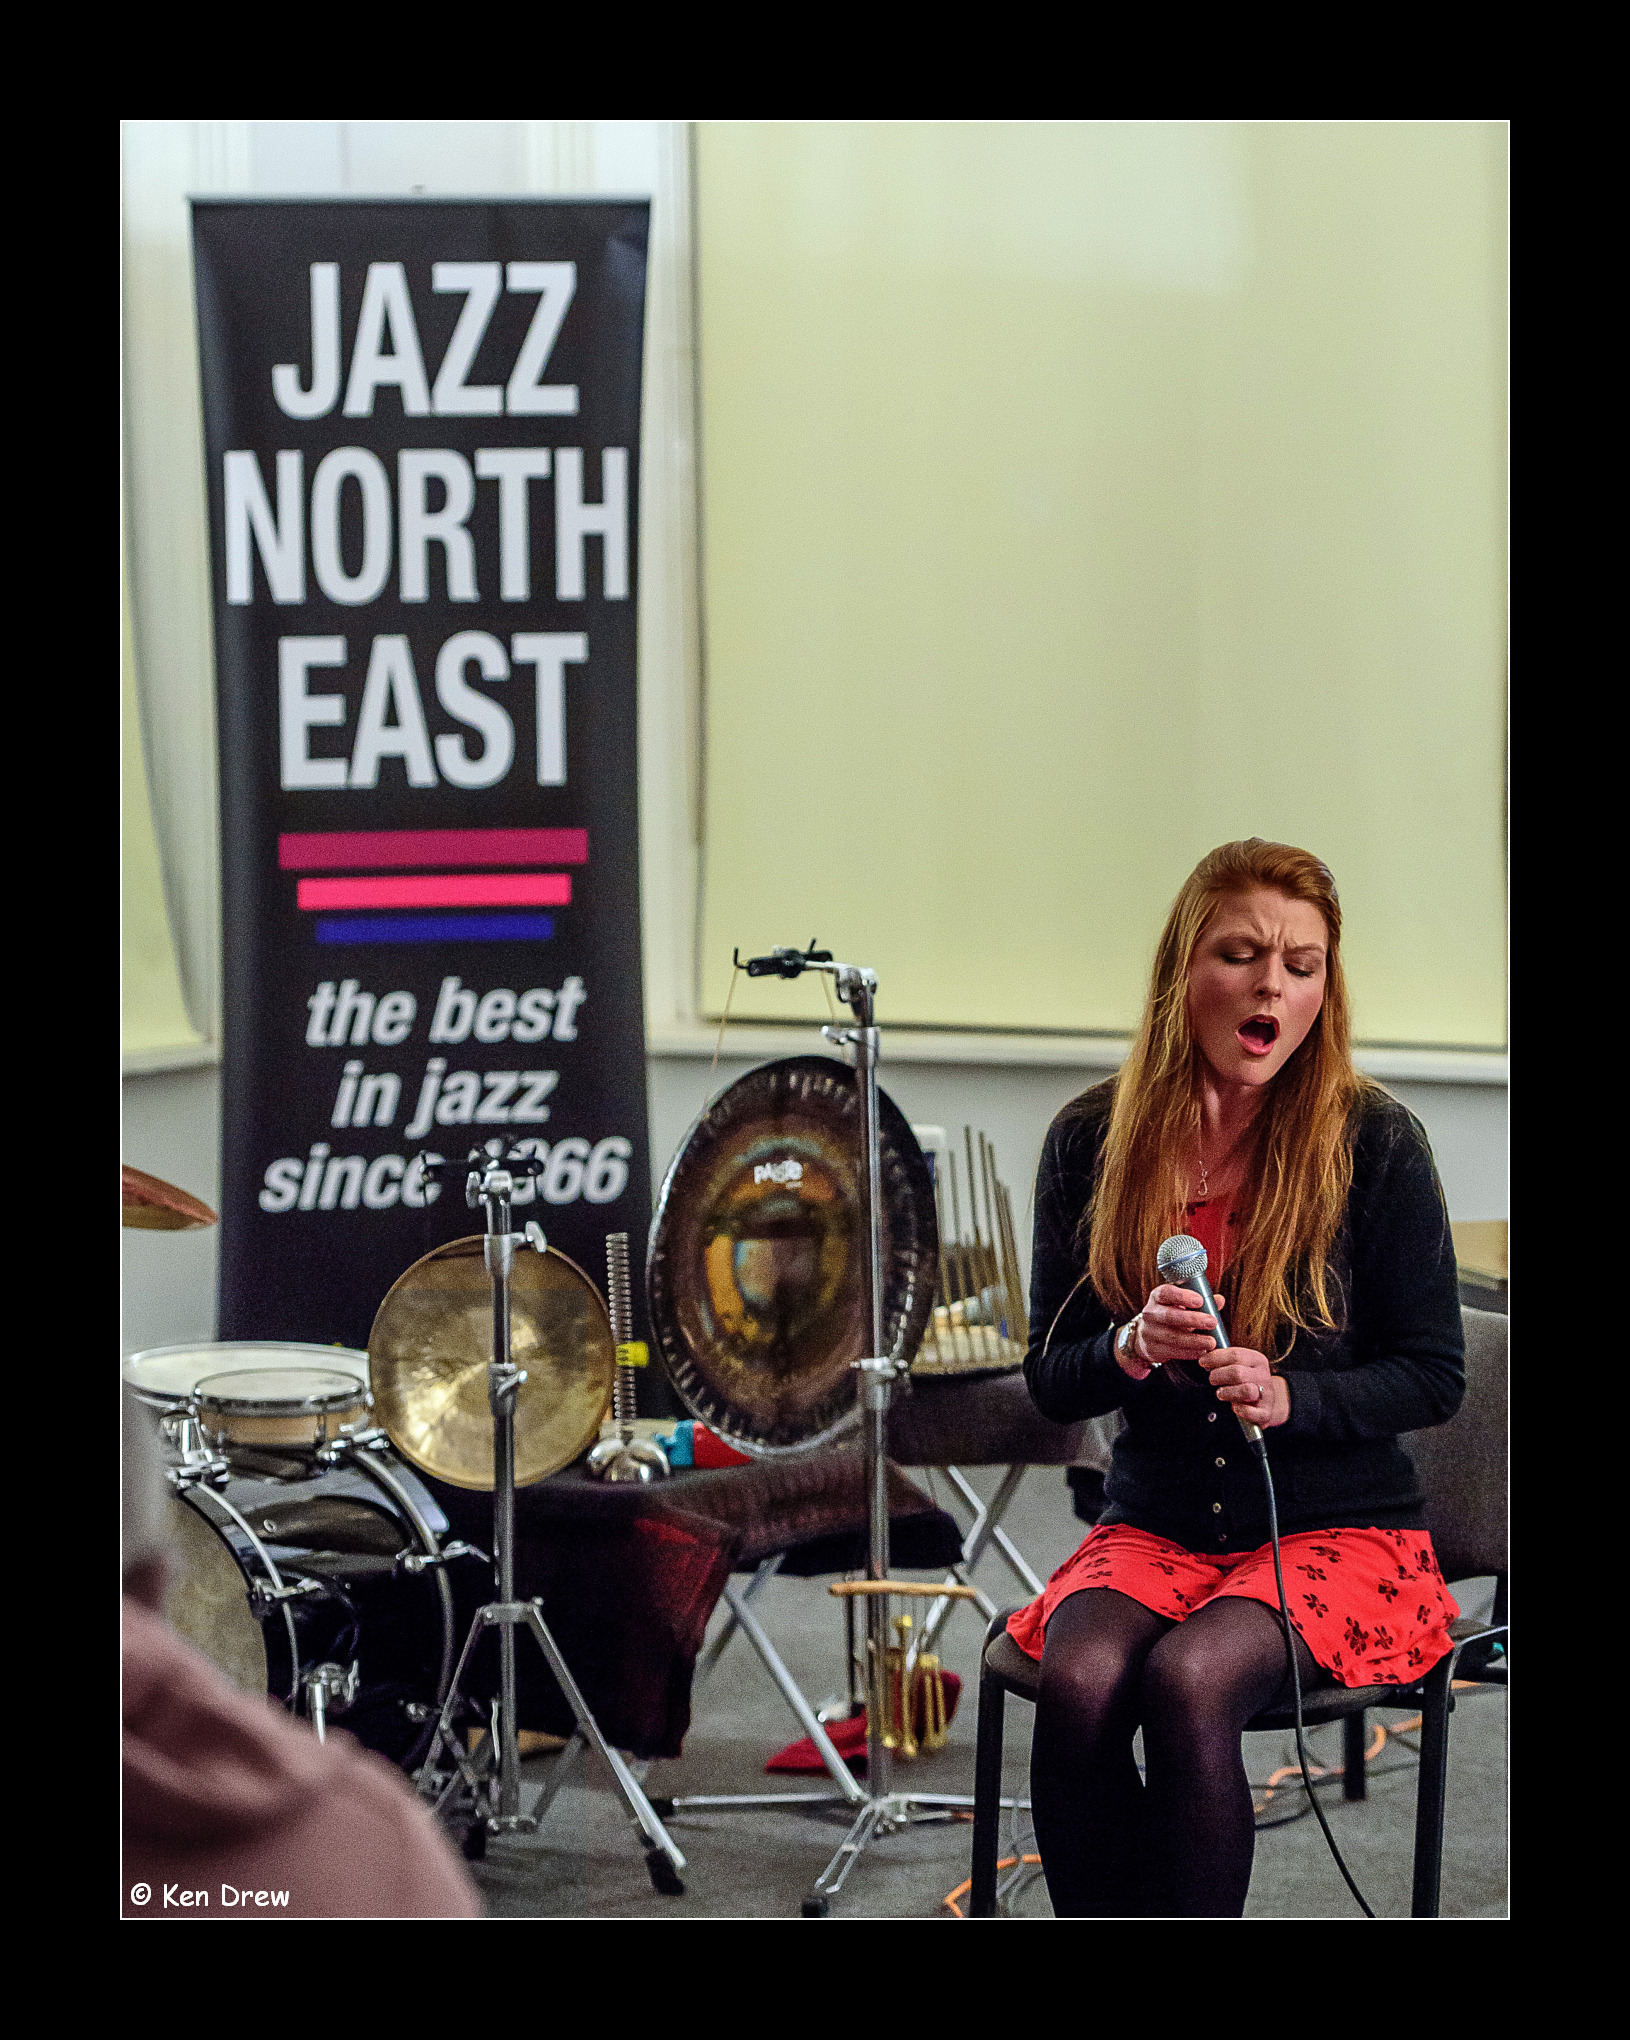 Yoko Miura/Charlie Collins + Zoë Gilby – Jazz North East  23 Sept 2015  _cKen Drew_